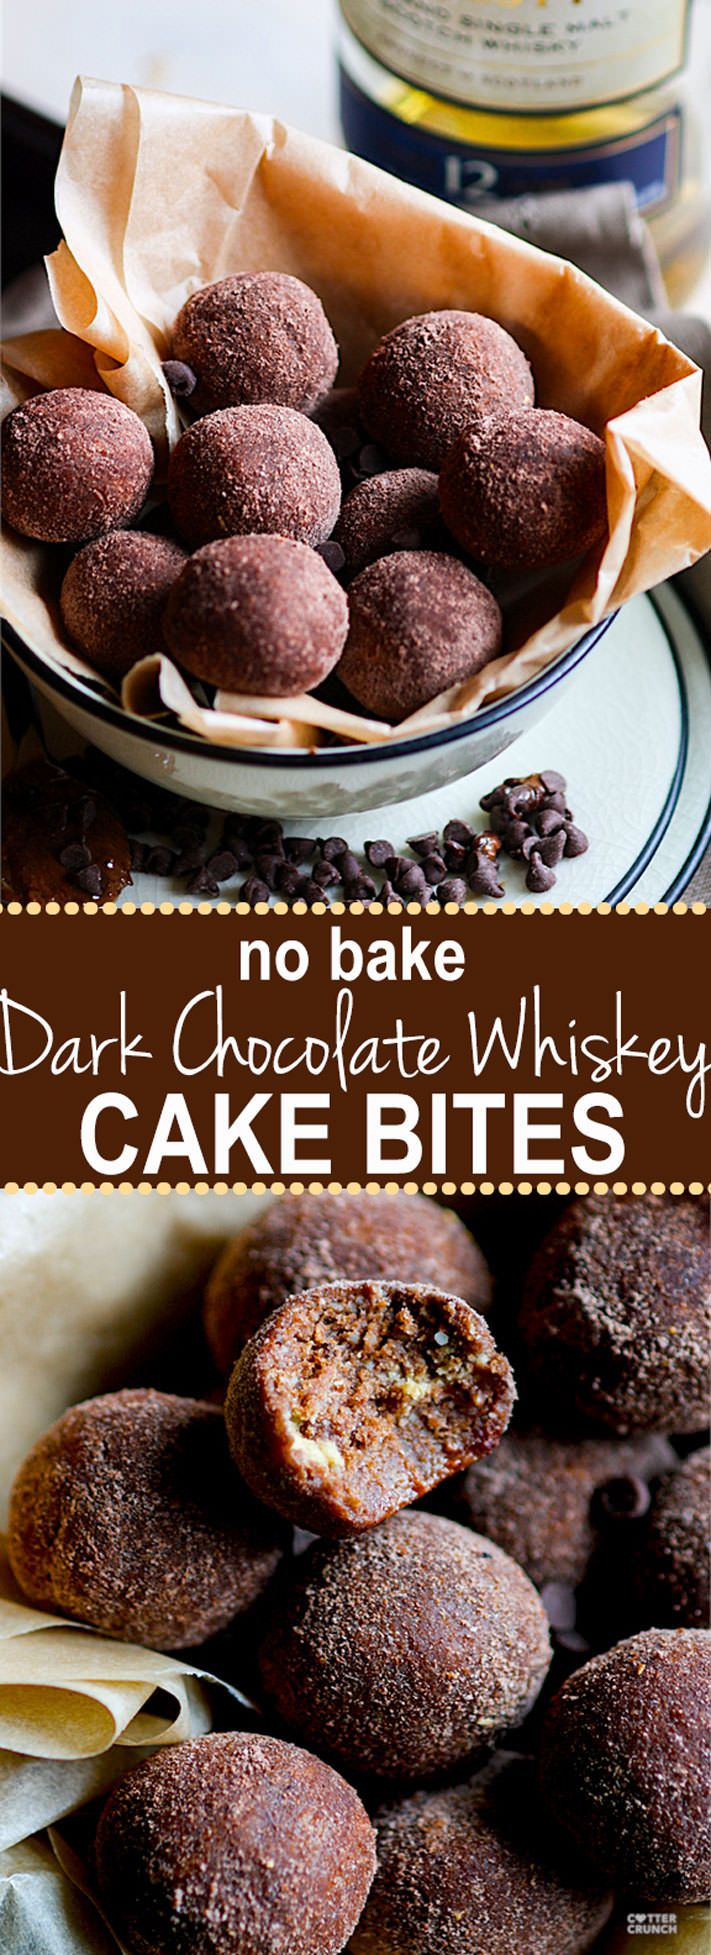 Dark Chocolate Whiskey Cake Bites Recipe Alcoholic Desserts